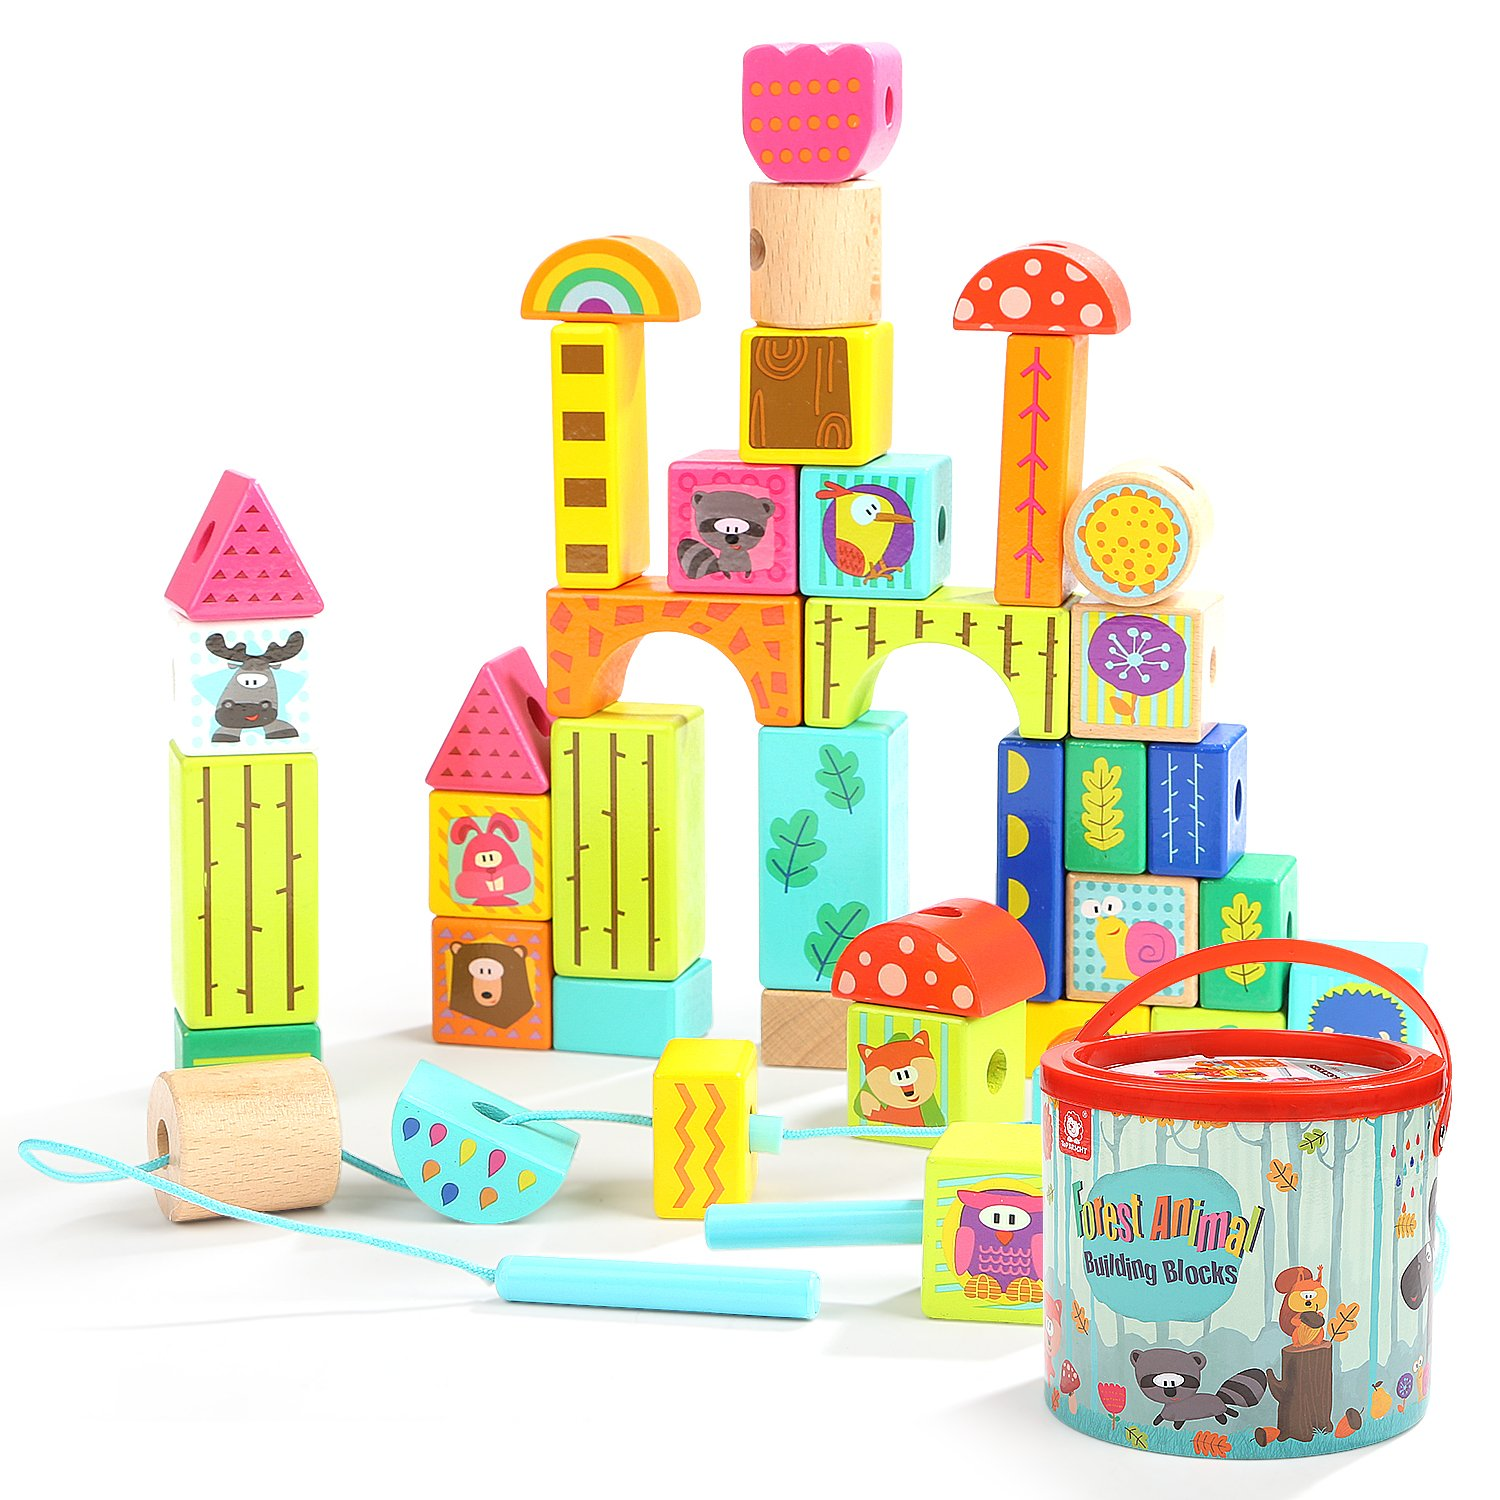 TOP BRIGHT Wooden Building Blocks Set, Educational Toys Gifts for 2 3 Year Old Boys Girls, Colored Animal Blocks Lacing Beads, 38 Pieces